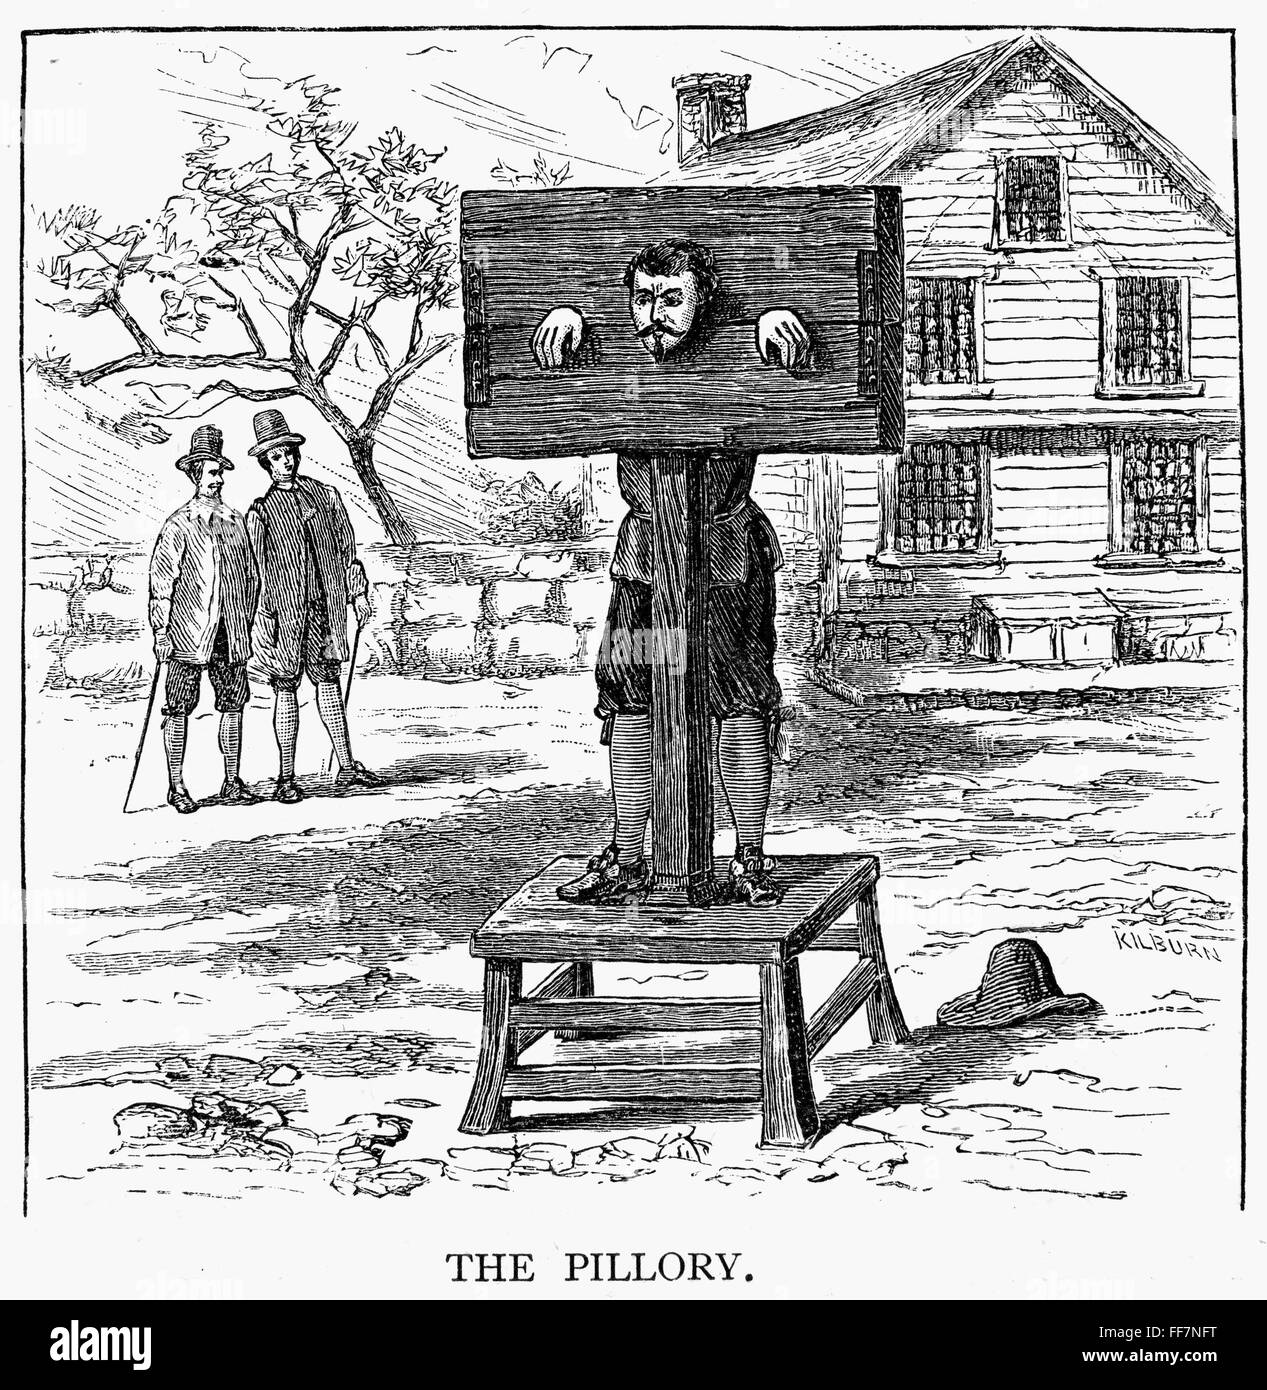 Females in the pillory adult pics